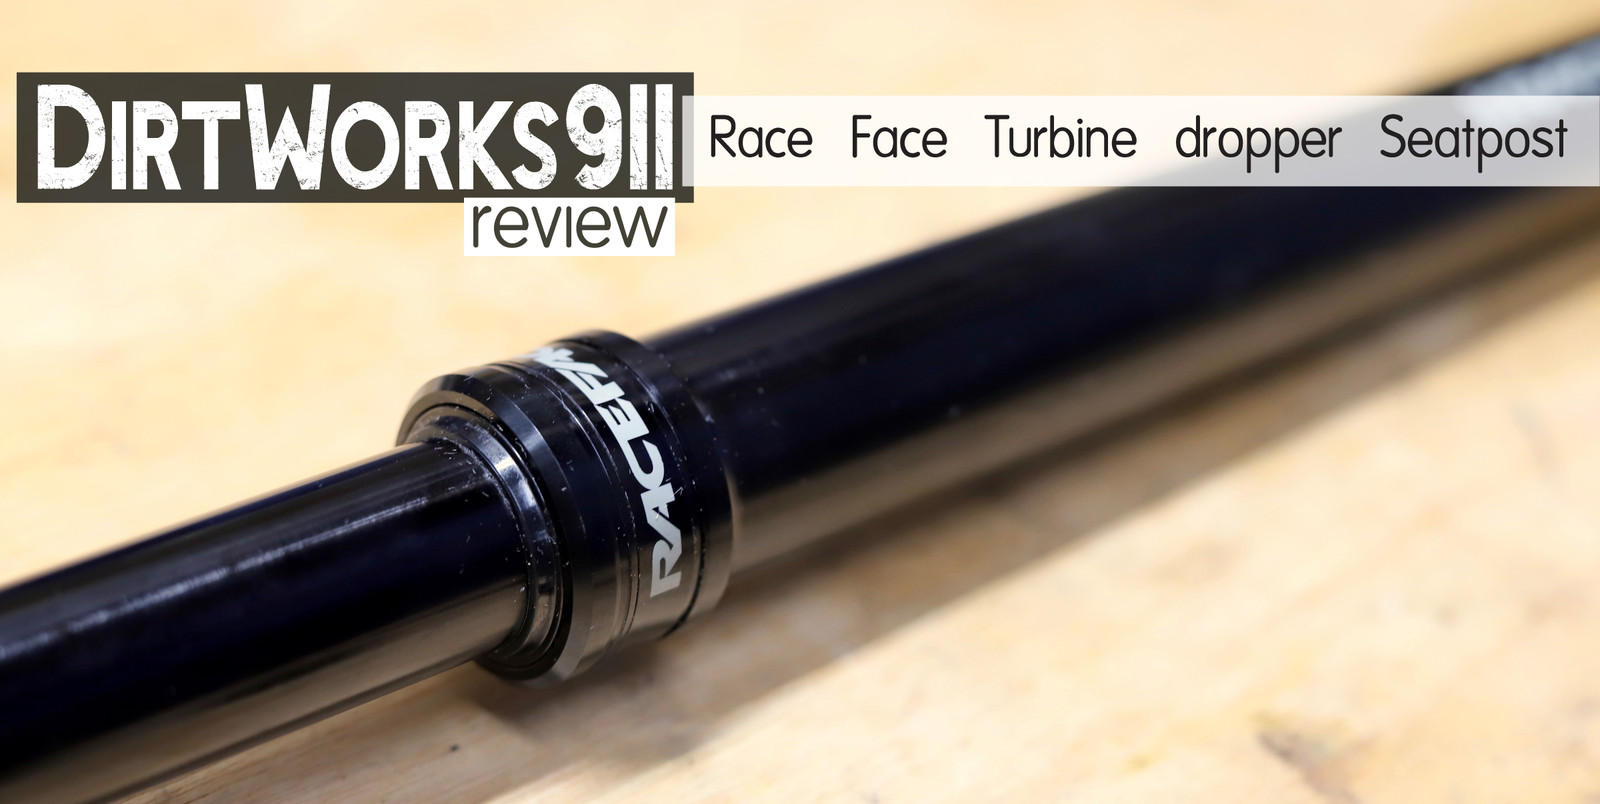 Race Face Turbine dropper Seatpost